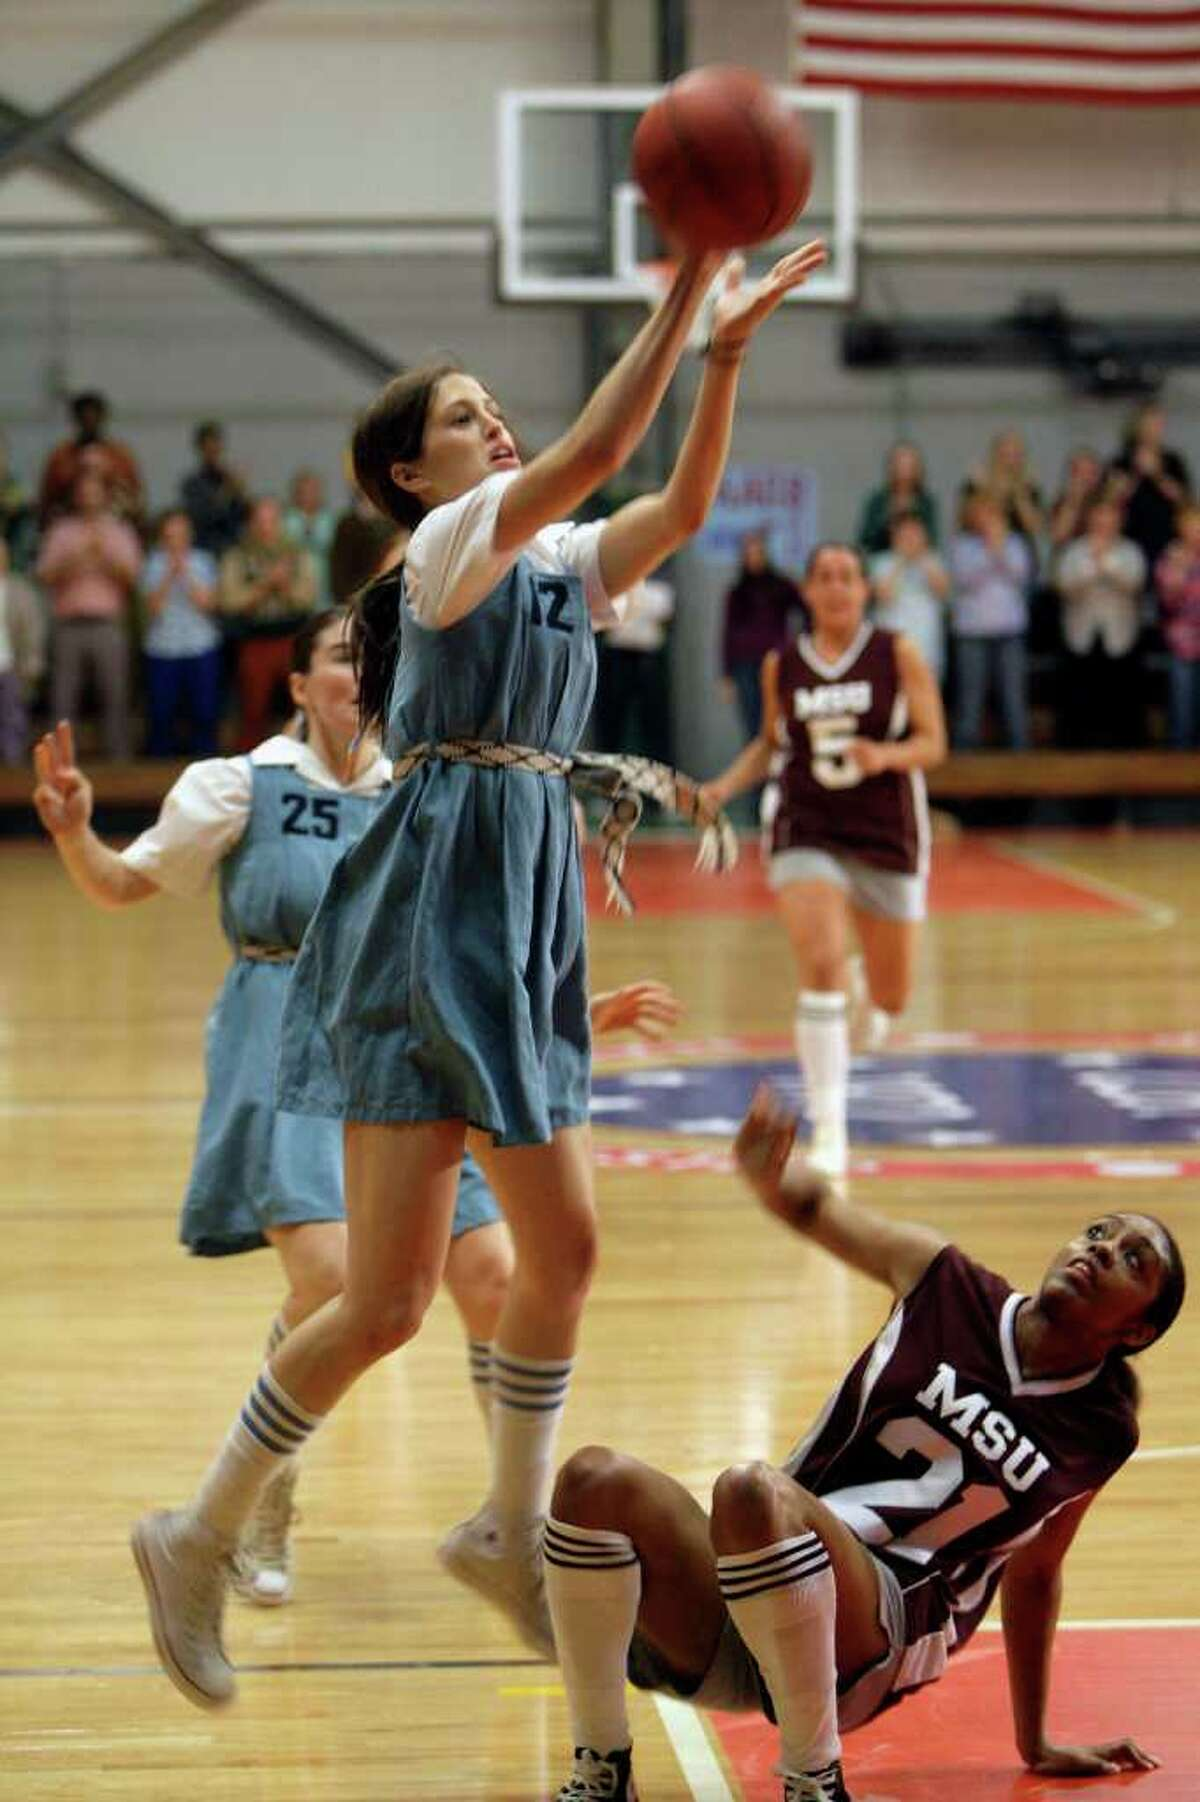 ASSOCIATED PRESS LEGENDARY: Trish (Katie Hayek) and her Immaculata College teammates make history in The Mighty Macs.